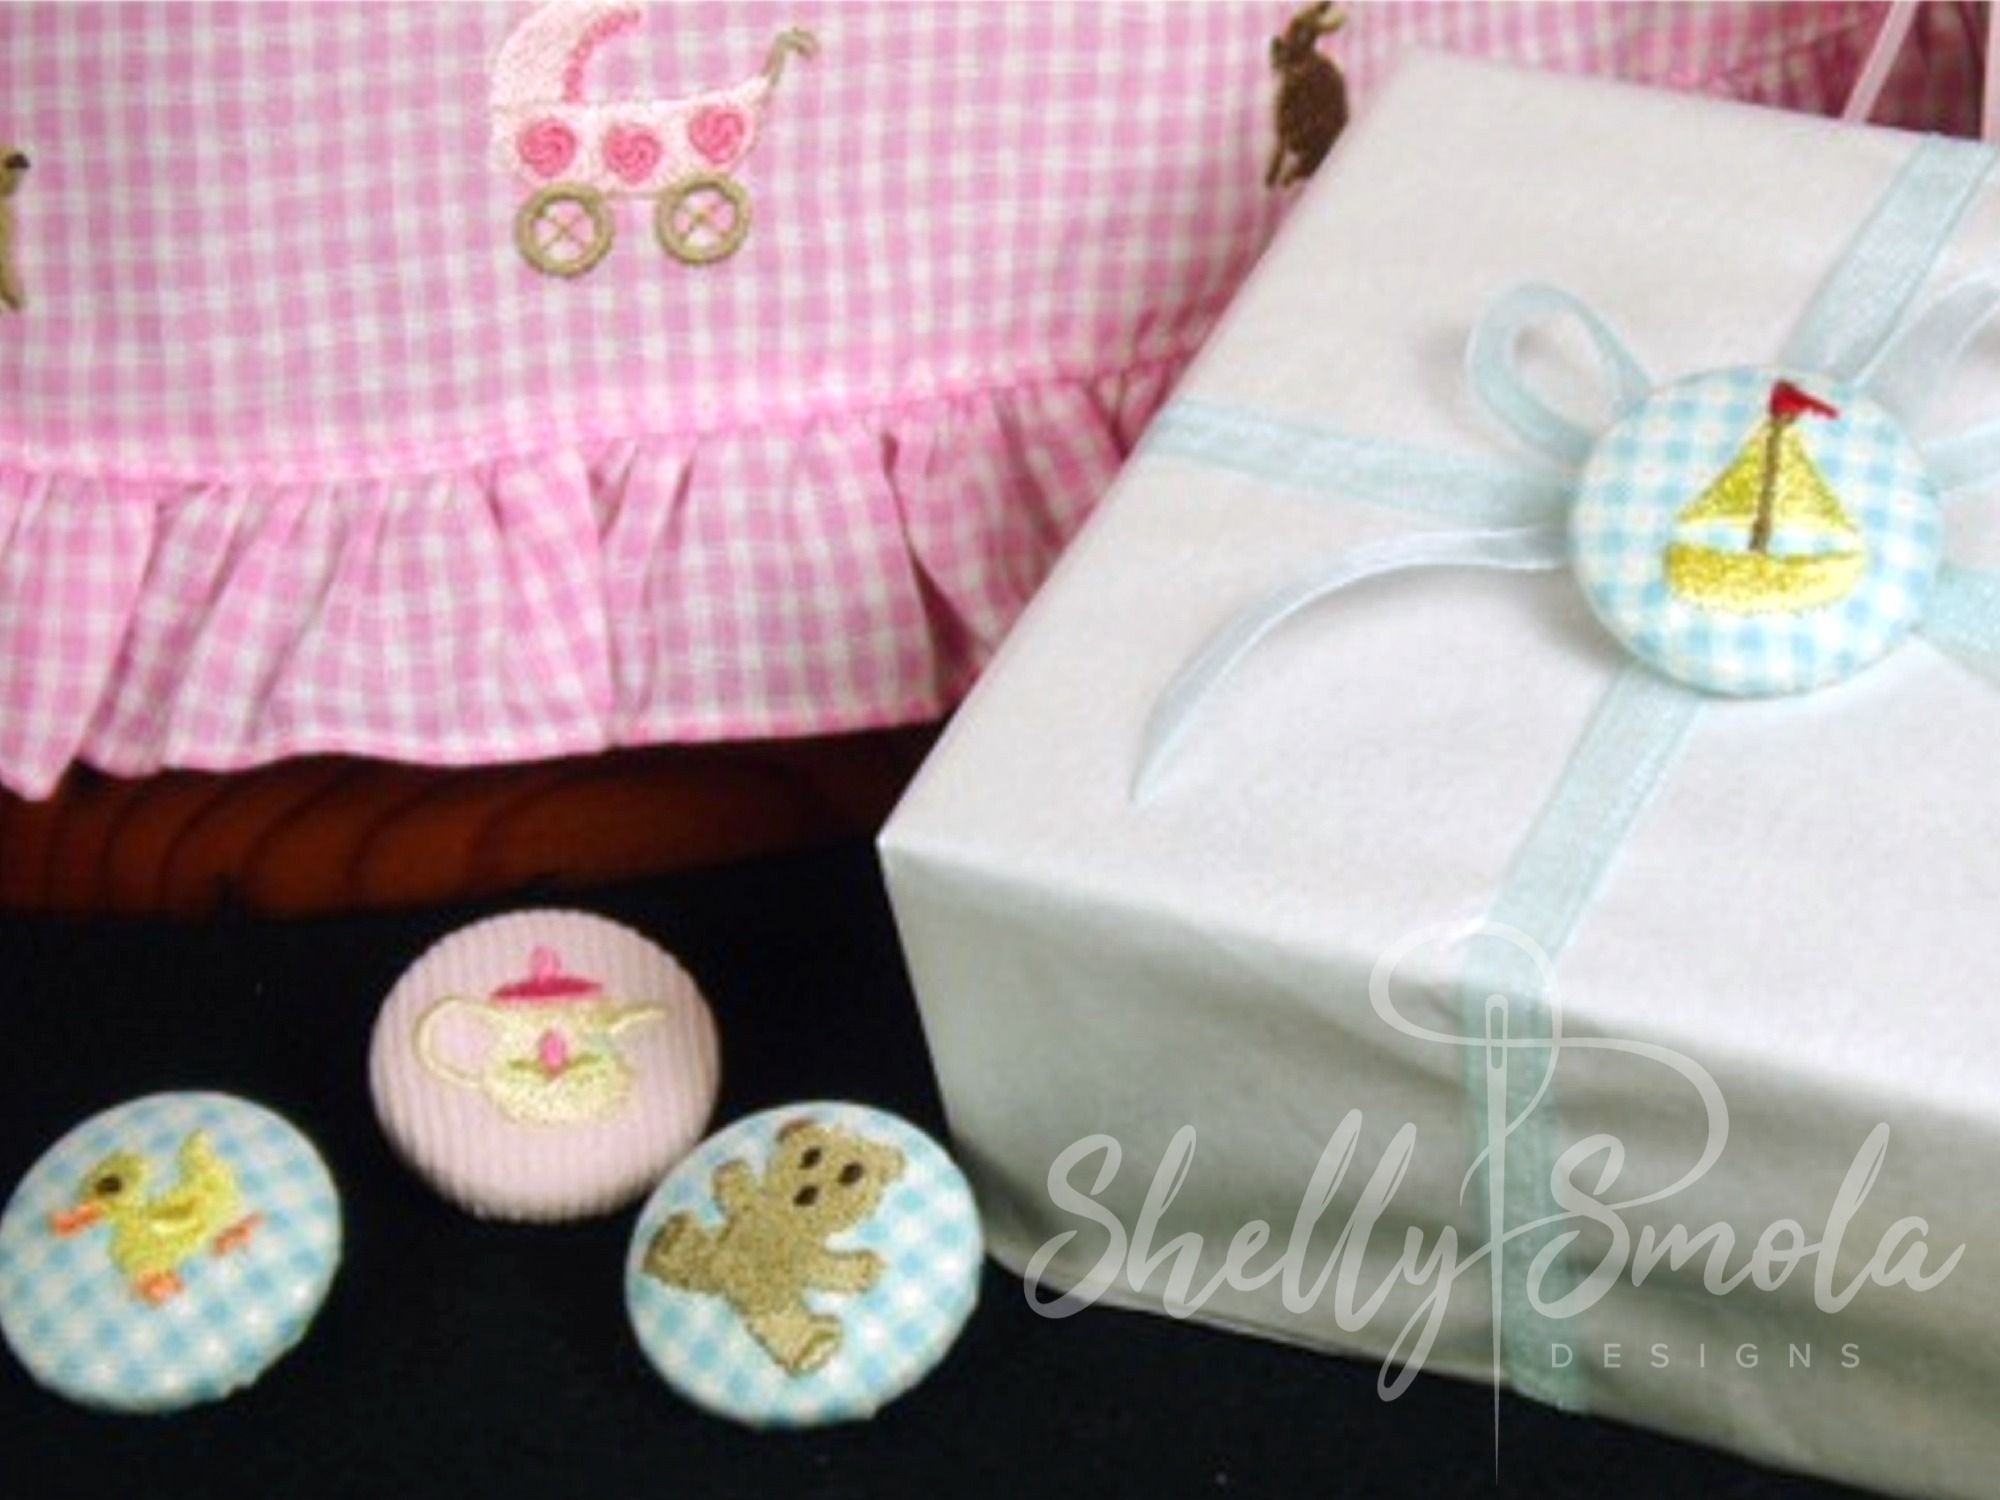 Babes and Toys Button Covers by Shelly Smola